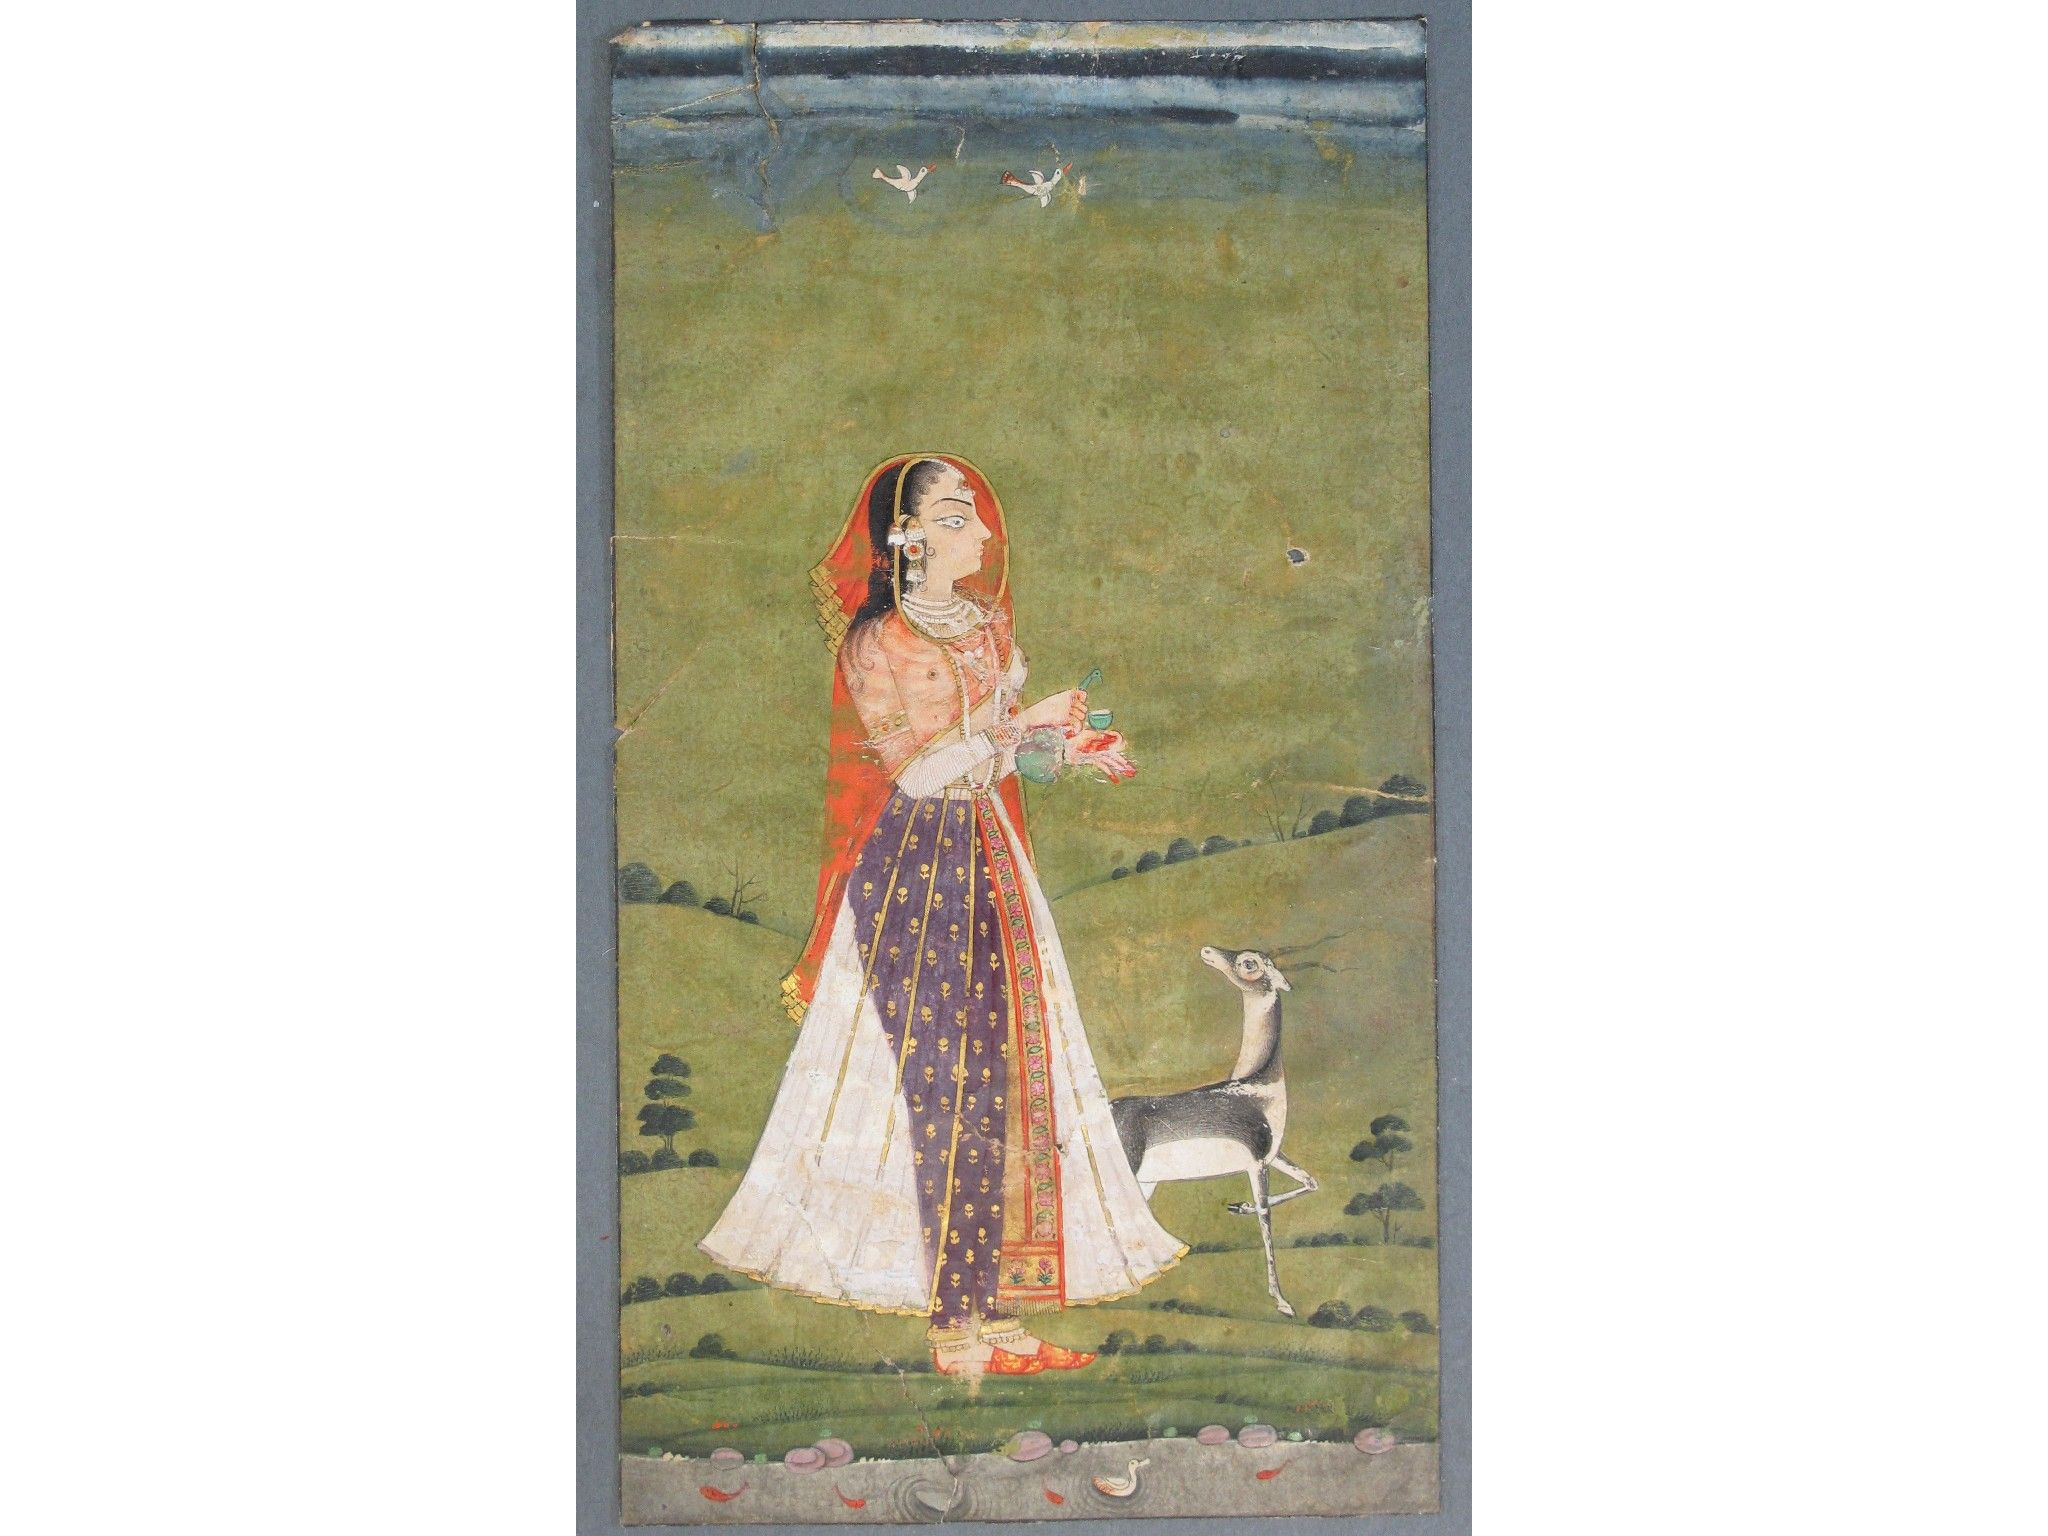 A LADY WITH A DEER Deccan Southern India 18th century gouache with gold and